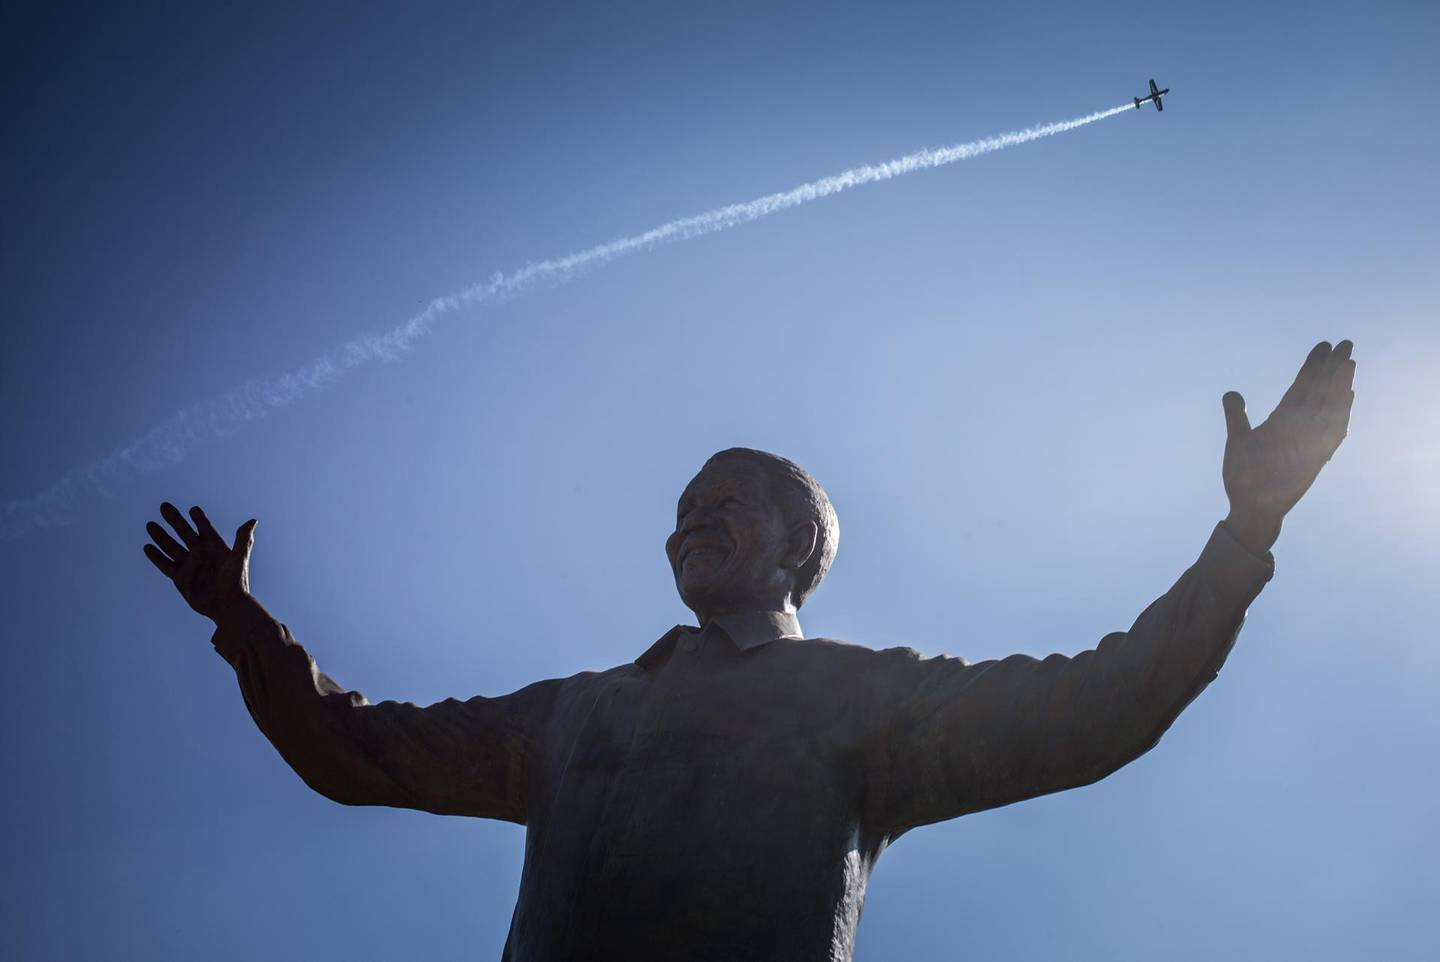 A South African airforce jet flies over a statue of Nelson Mandela at the Union Building in Pretoria during the celebrations of the 20th anniversary of Freedom day, which marks the end of the Apartheid politic, in Pretoria on April 27, 2014.    AFP PHOTO / FEDERICO SCOPPA (Photo by FEDERICO SCOPPA / AFP)